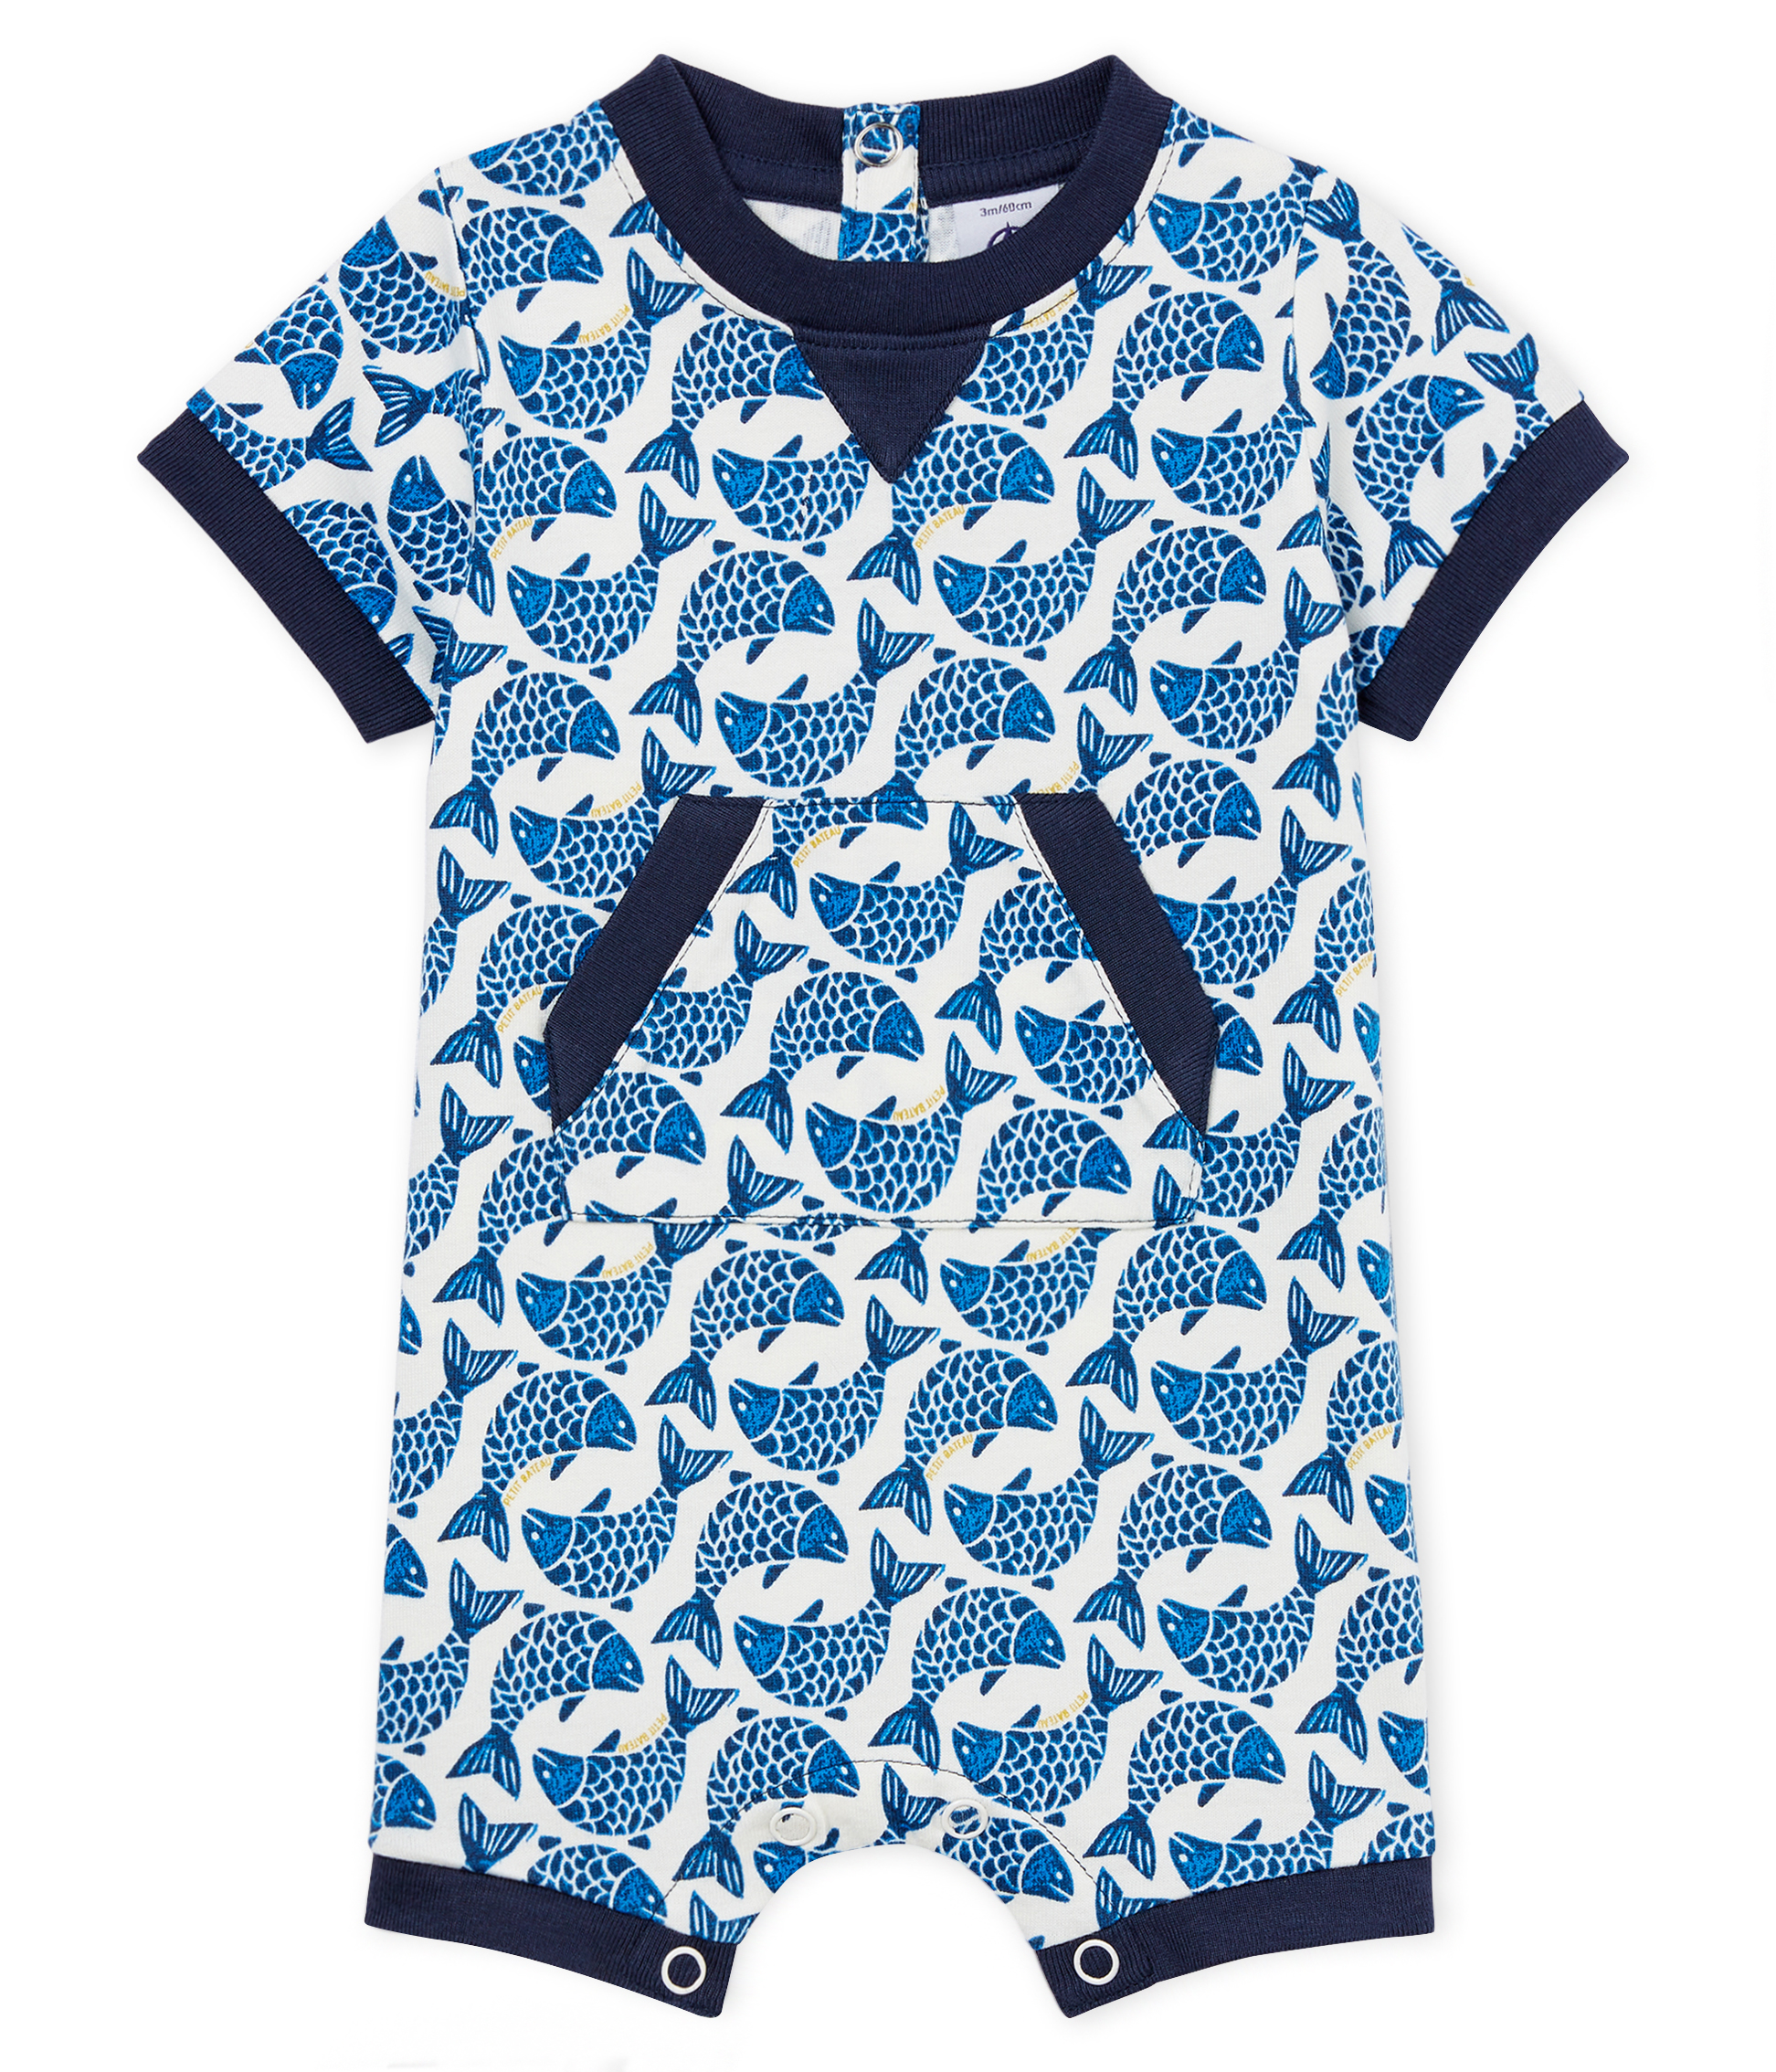 Baby boys' Shortie in light printed jersey